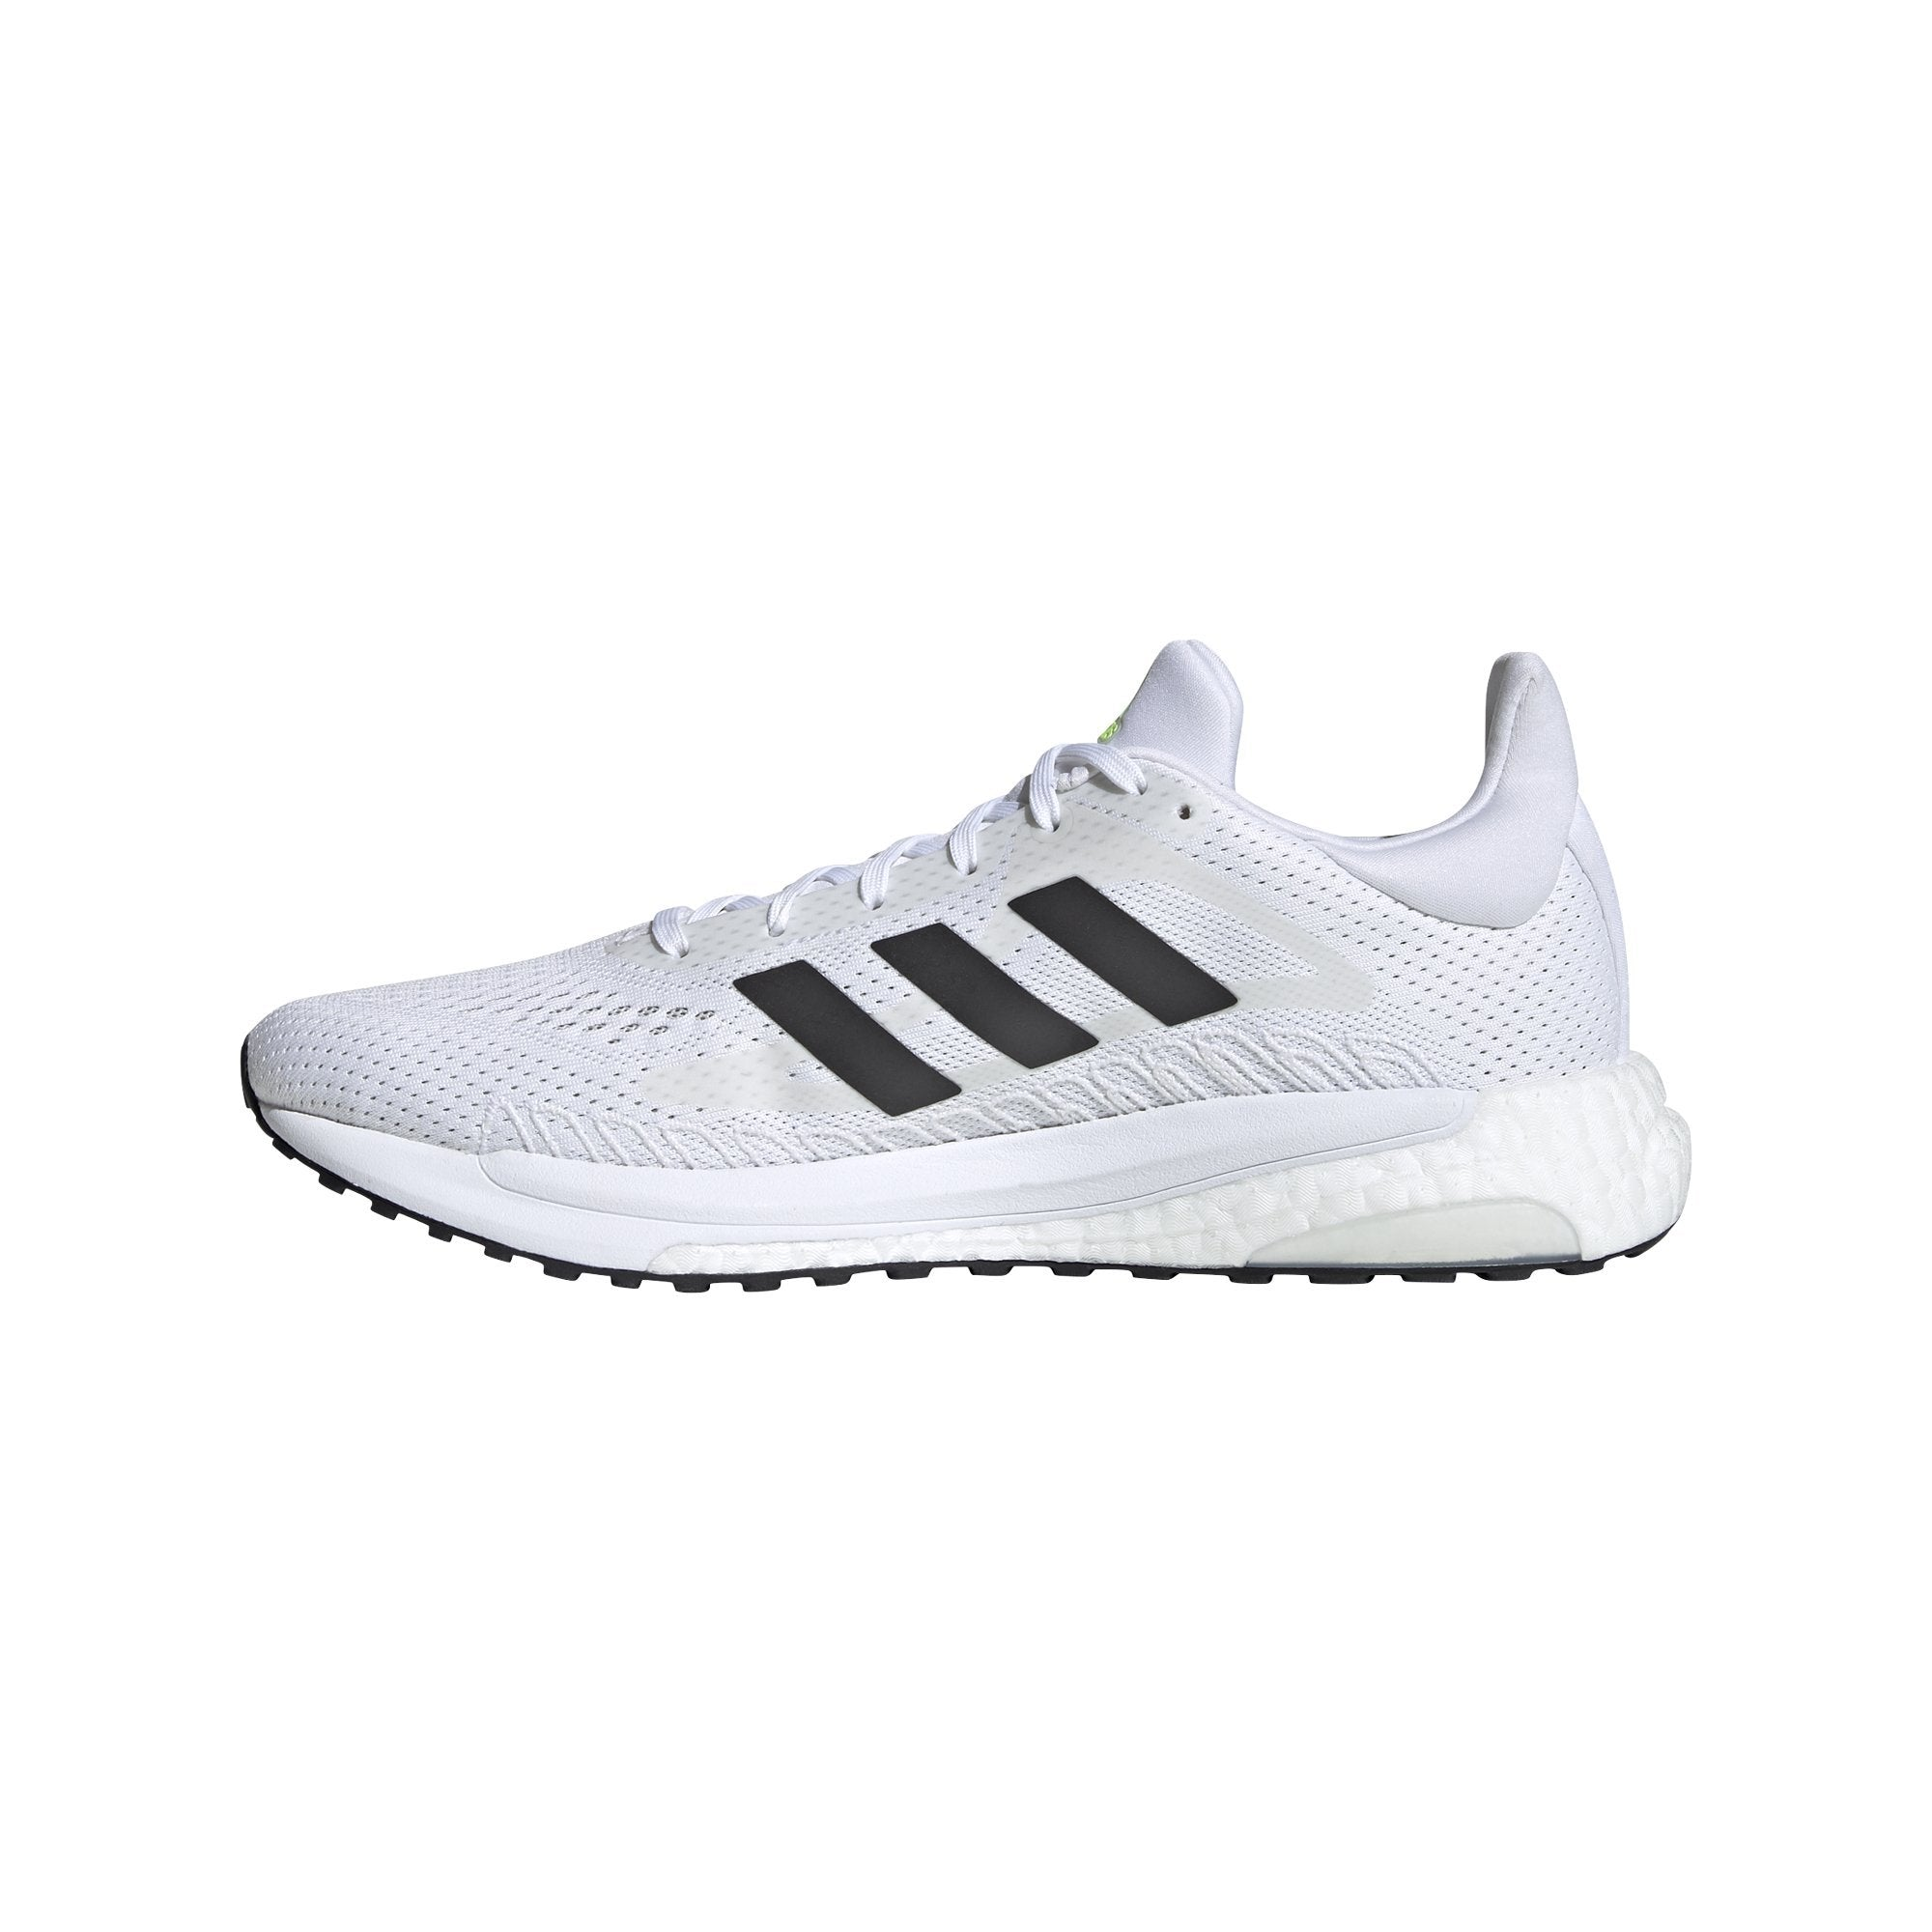 Adidas Men's Solar Glide 3 M - Ftwr White/Core Black/Siggnr SP-Footwear-Mens Adidas